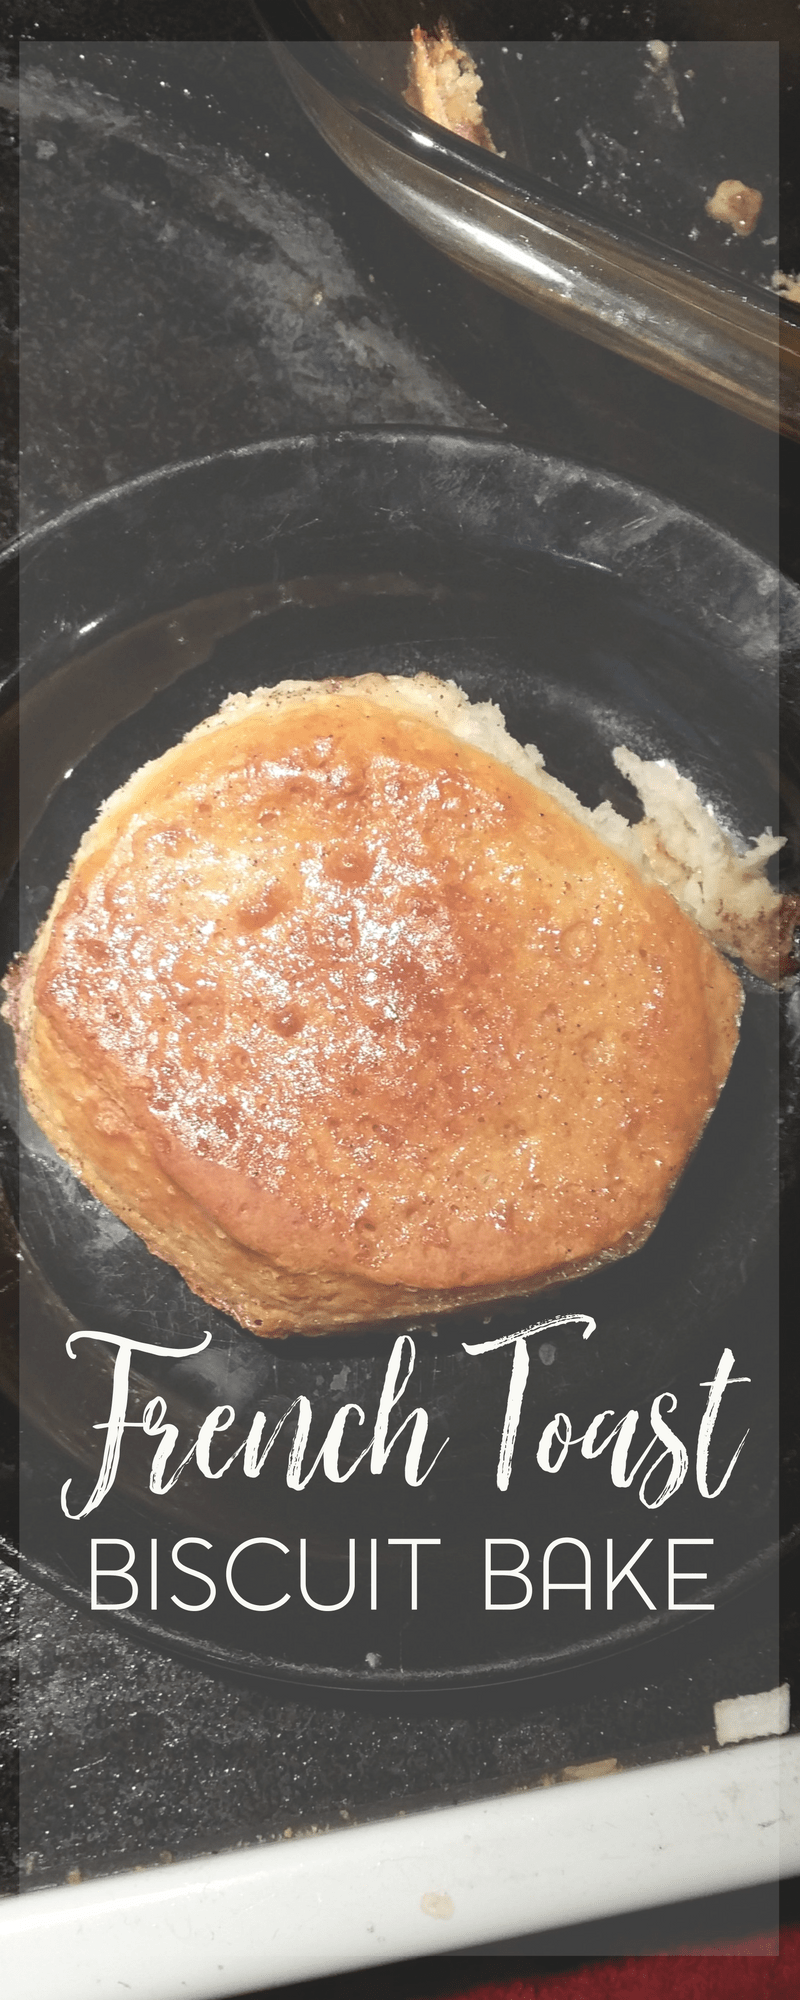 Easy French Toast Biscuit Bake for Breakfast 5